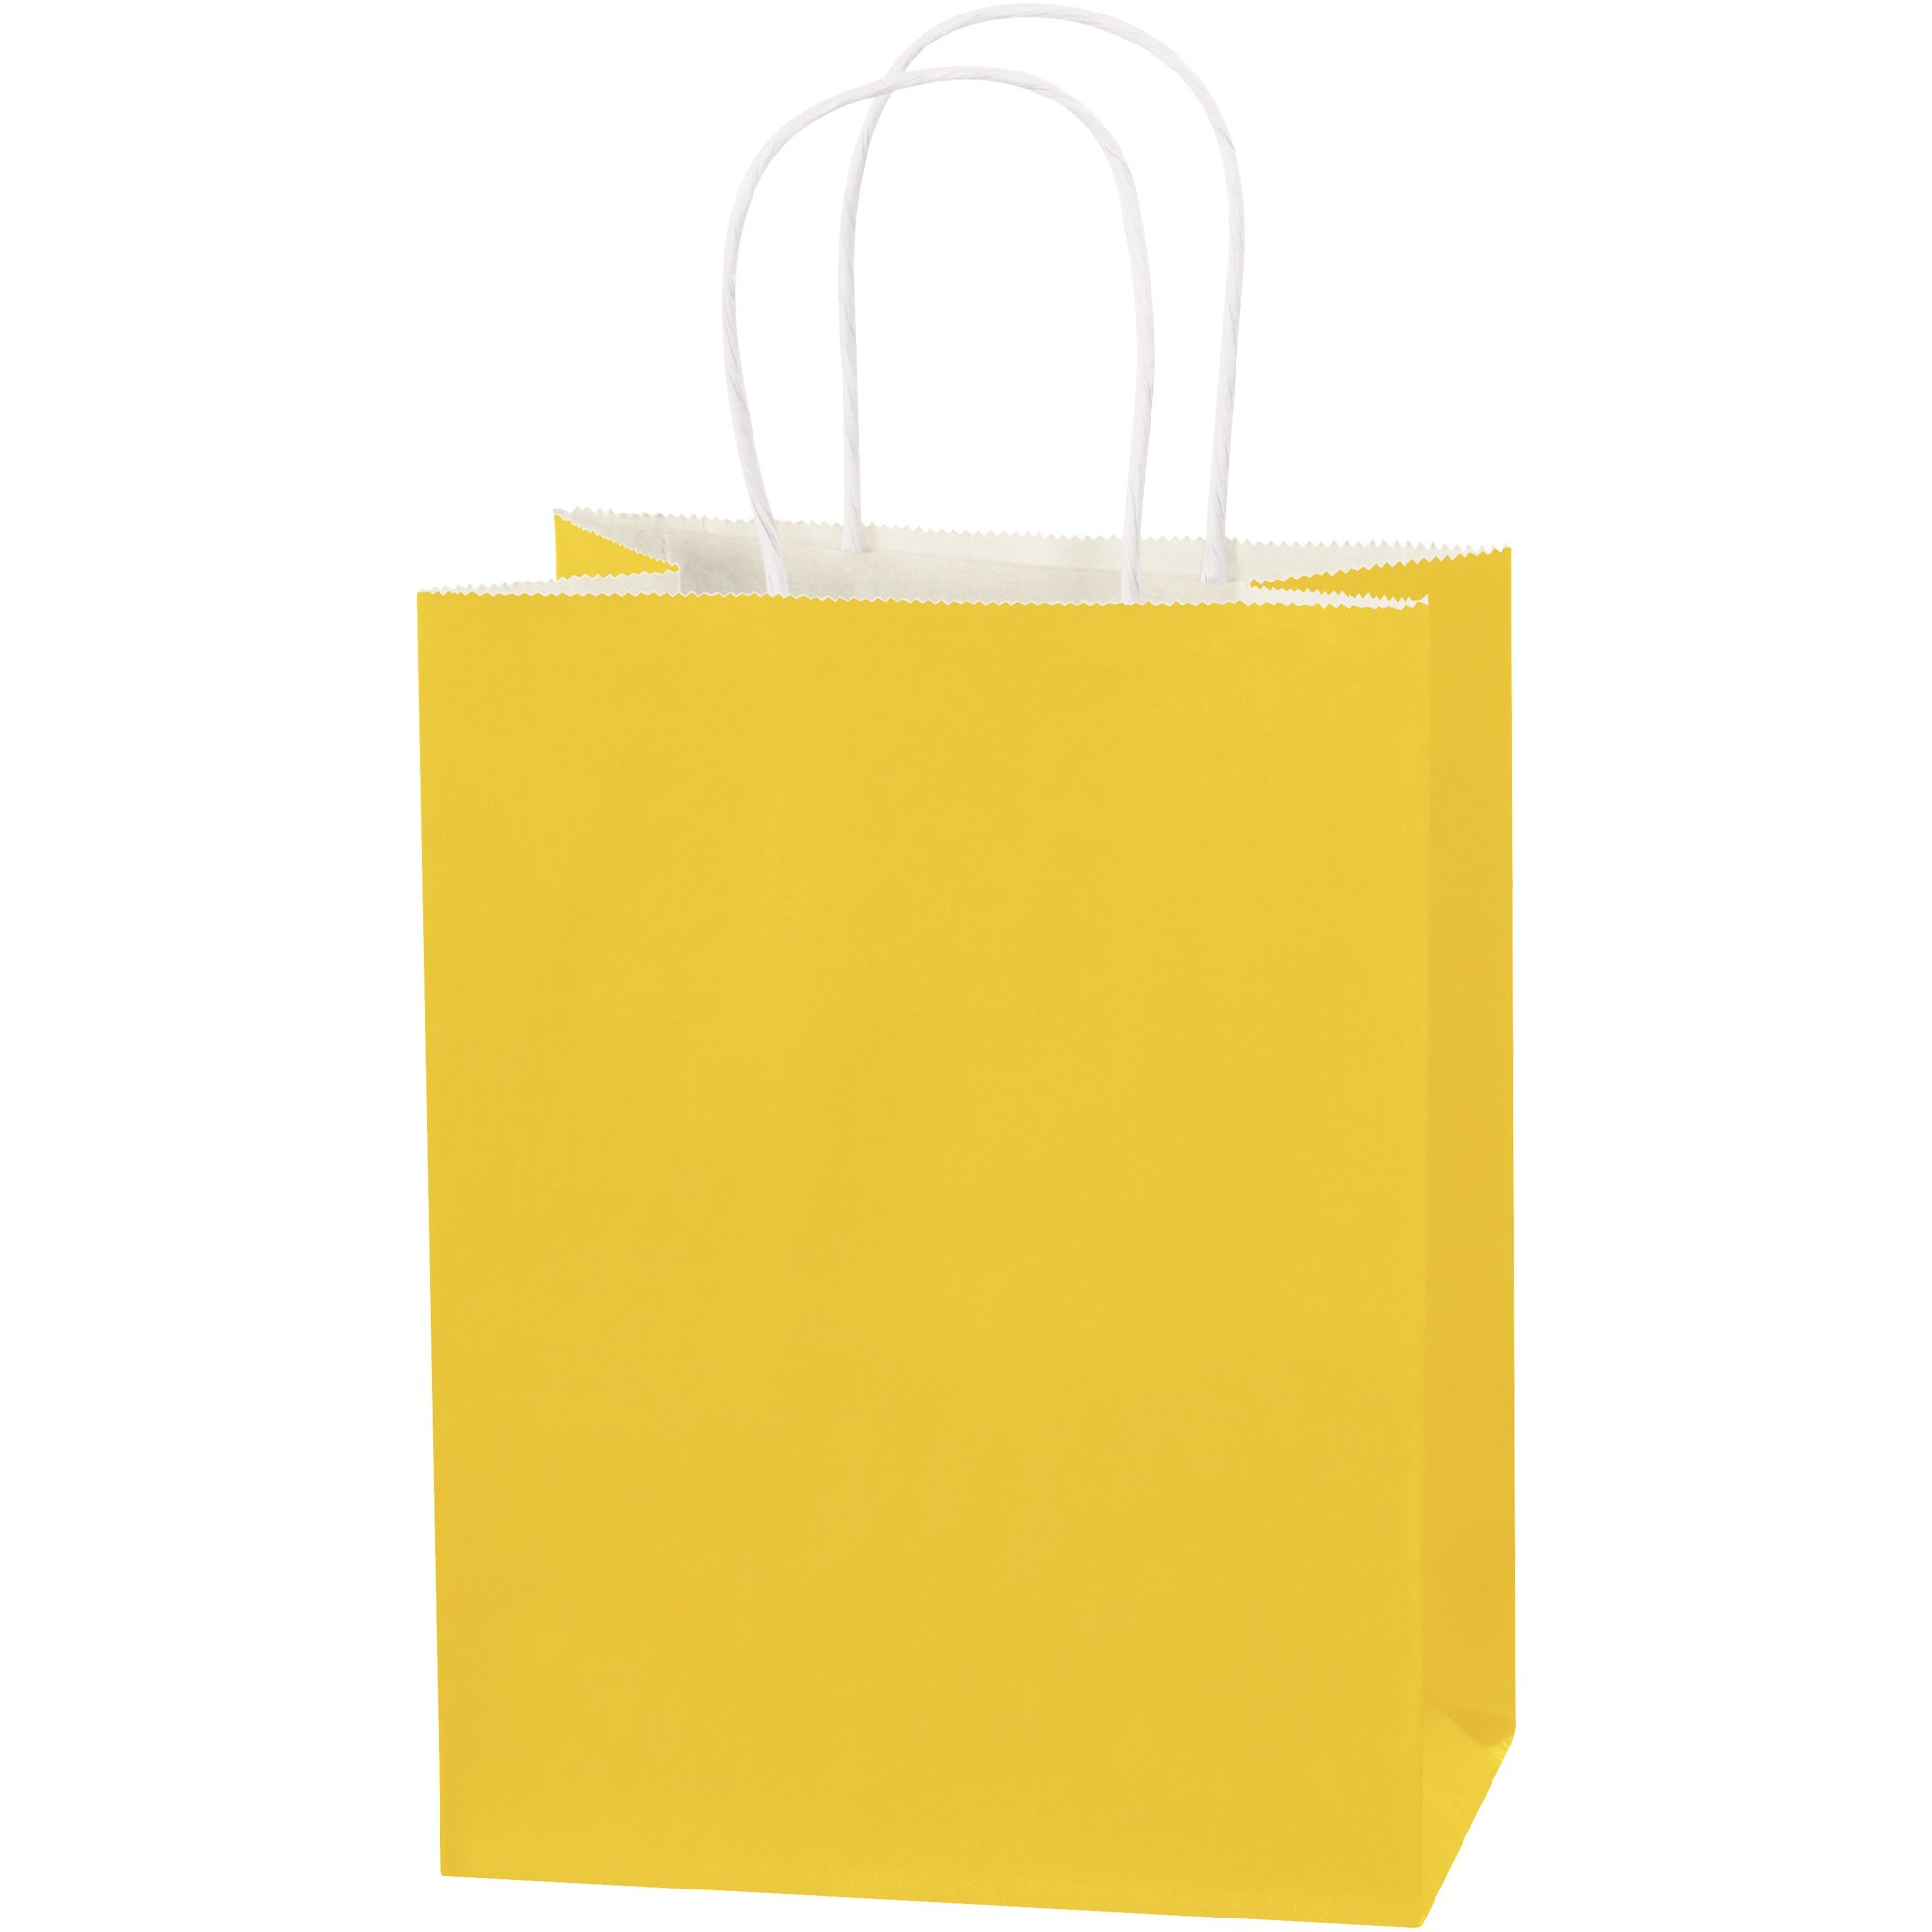 Tinted Paper Shopping Bags, 8'' x 4 1/2'' x 10 1/4'', Buttercup, 250/Case